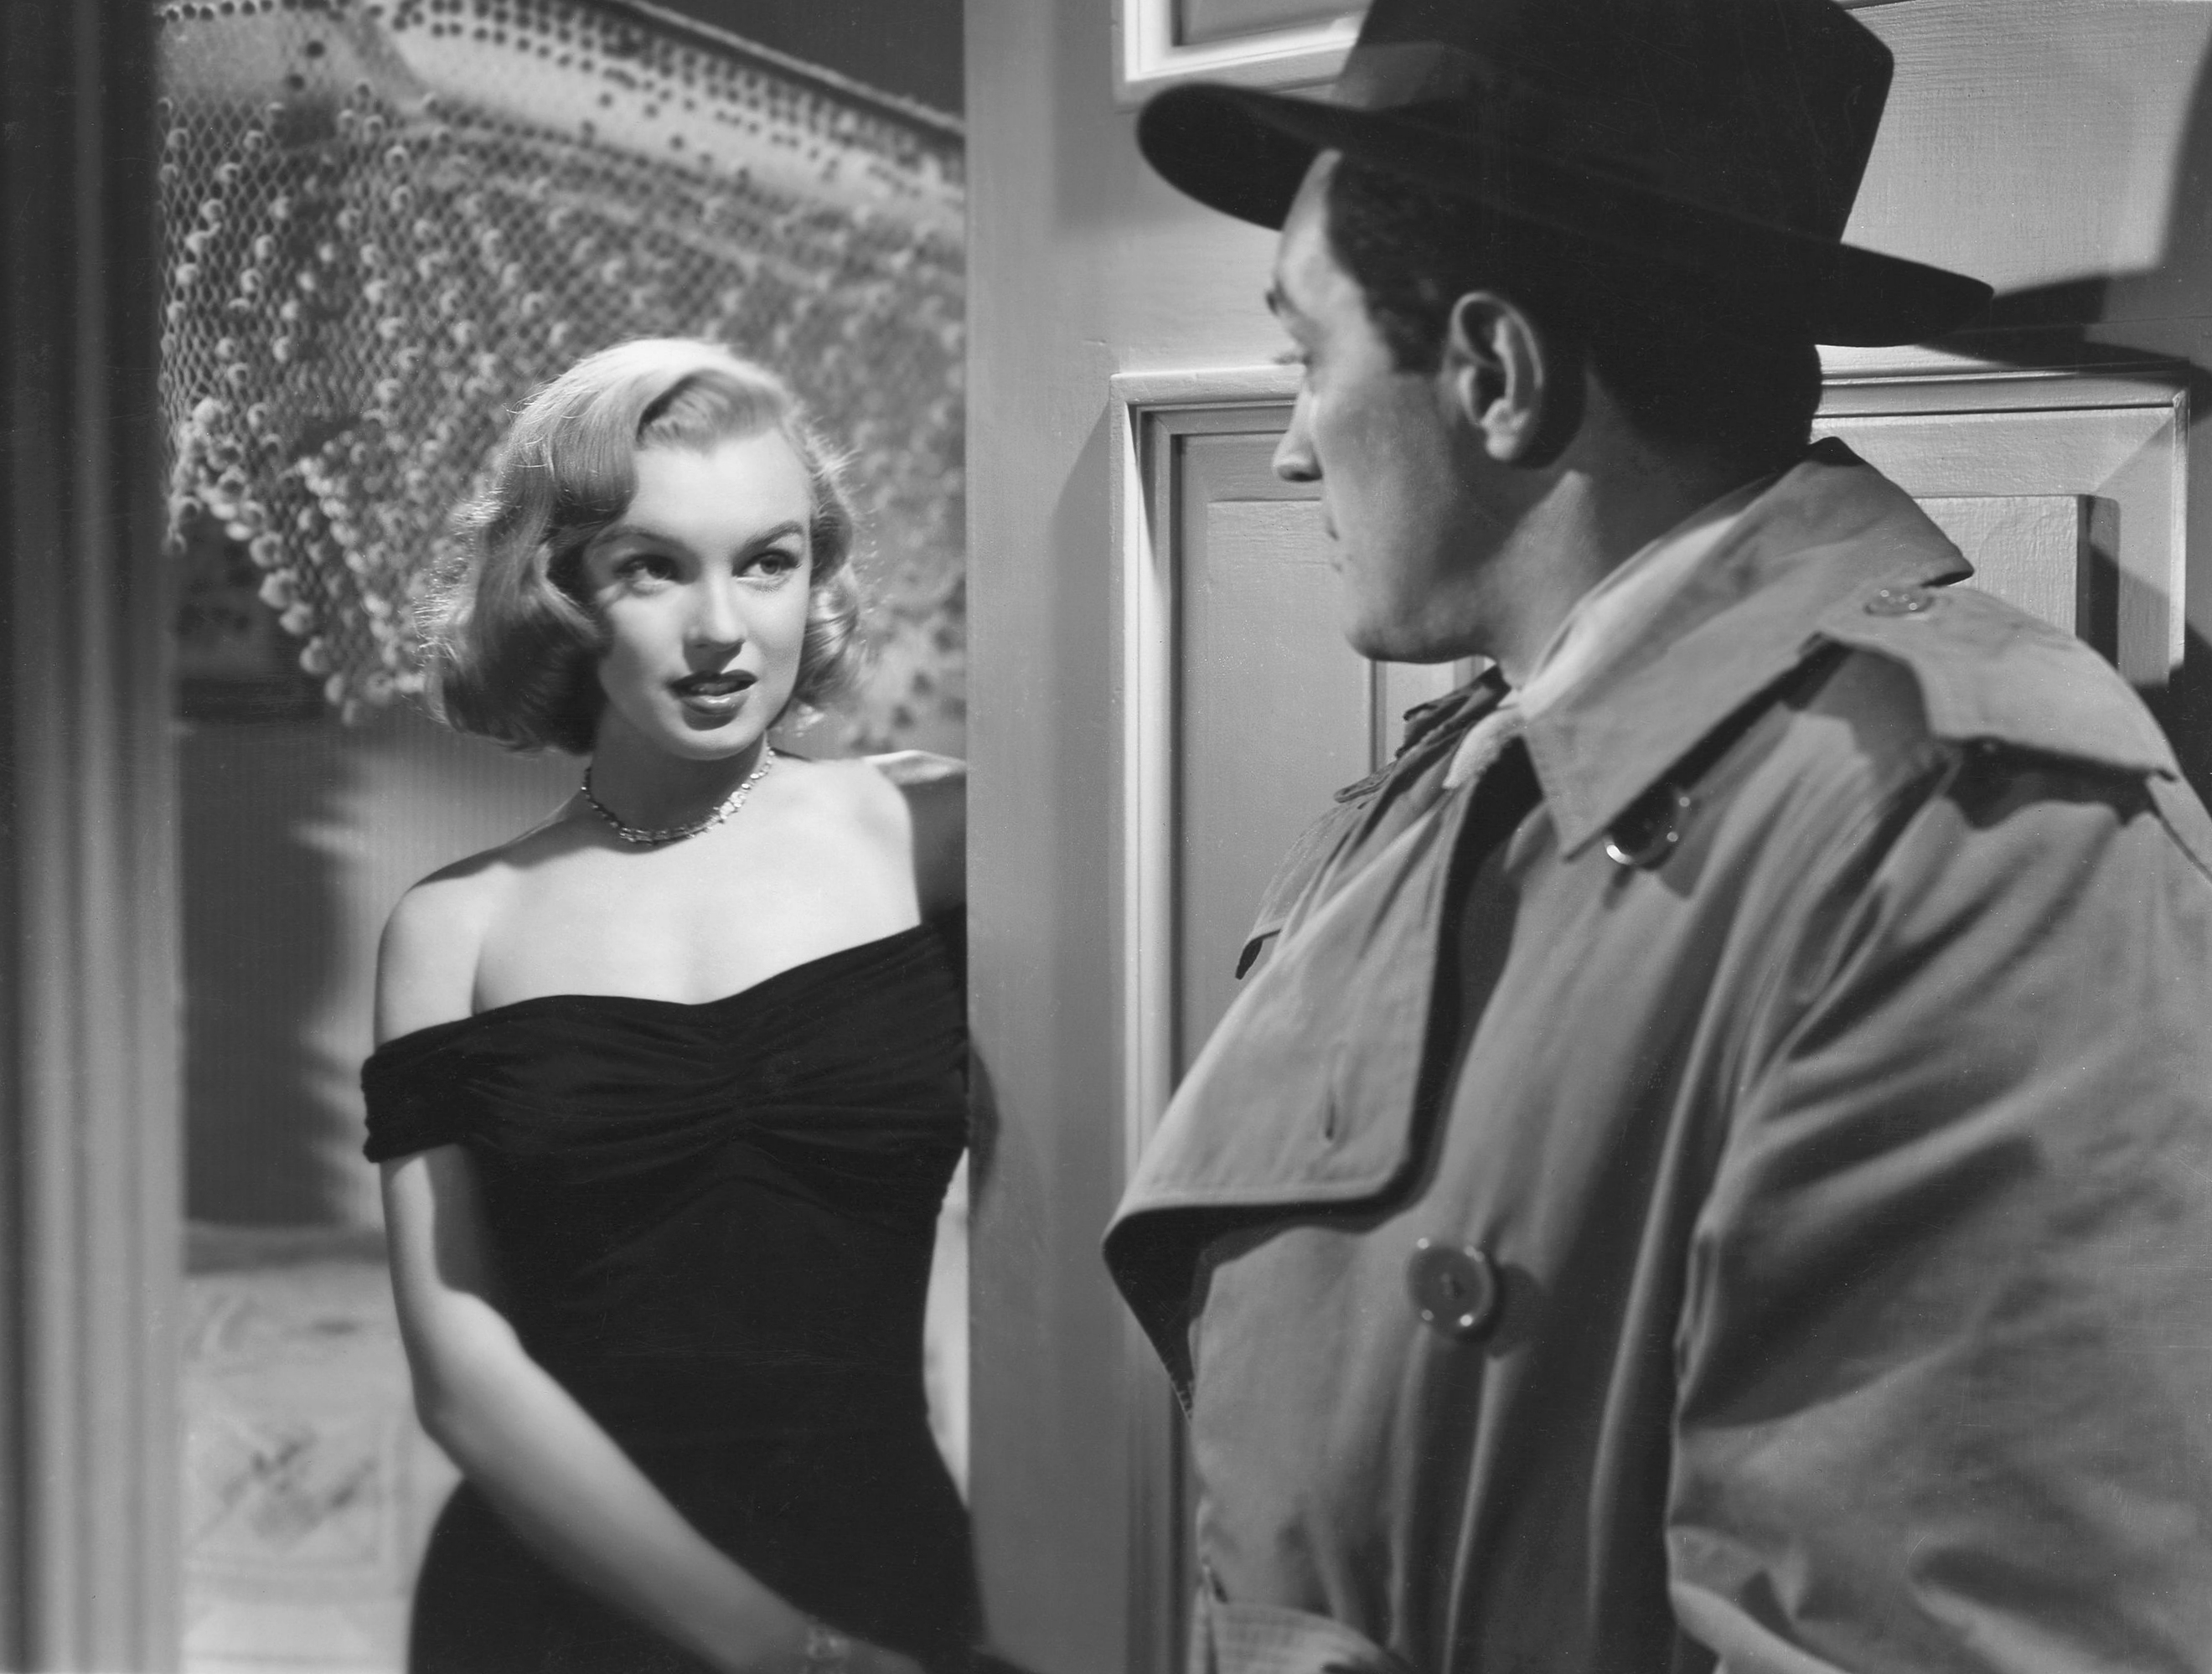 annex-monroe-marilyn-asphalt-jungle-the.jpg